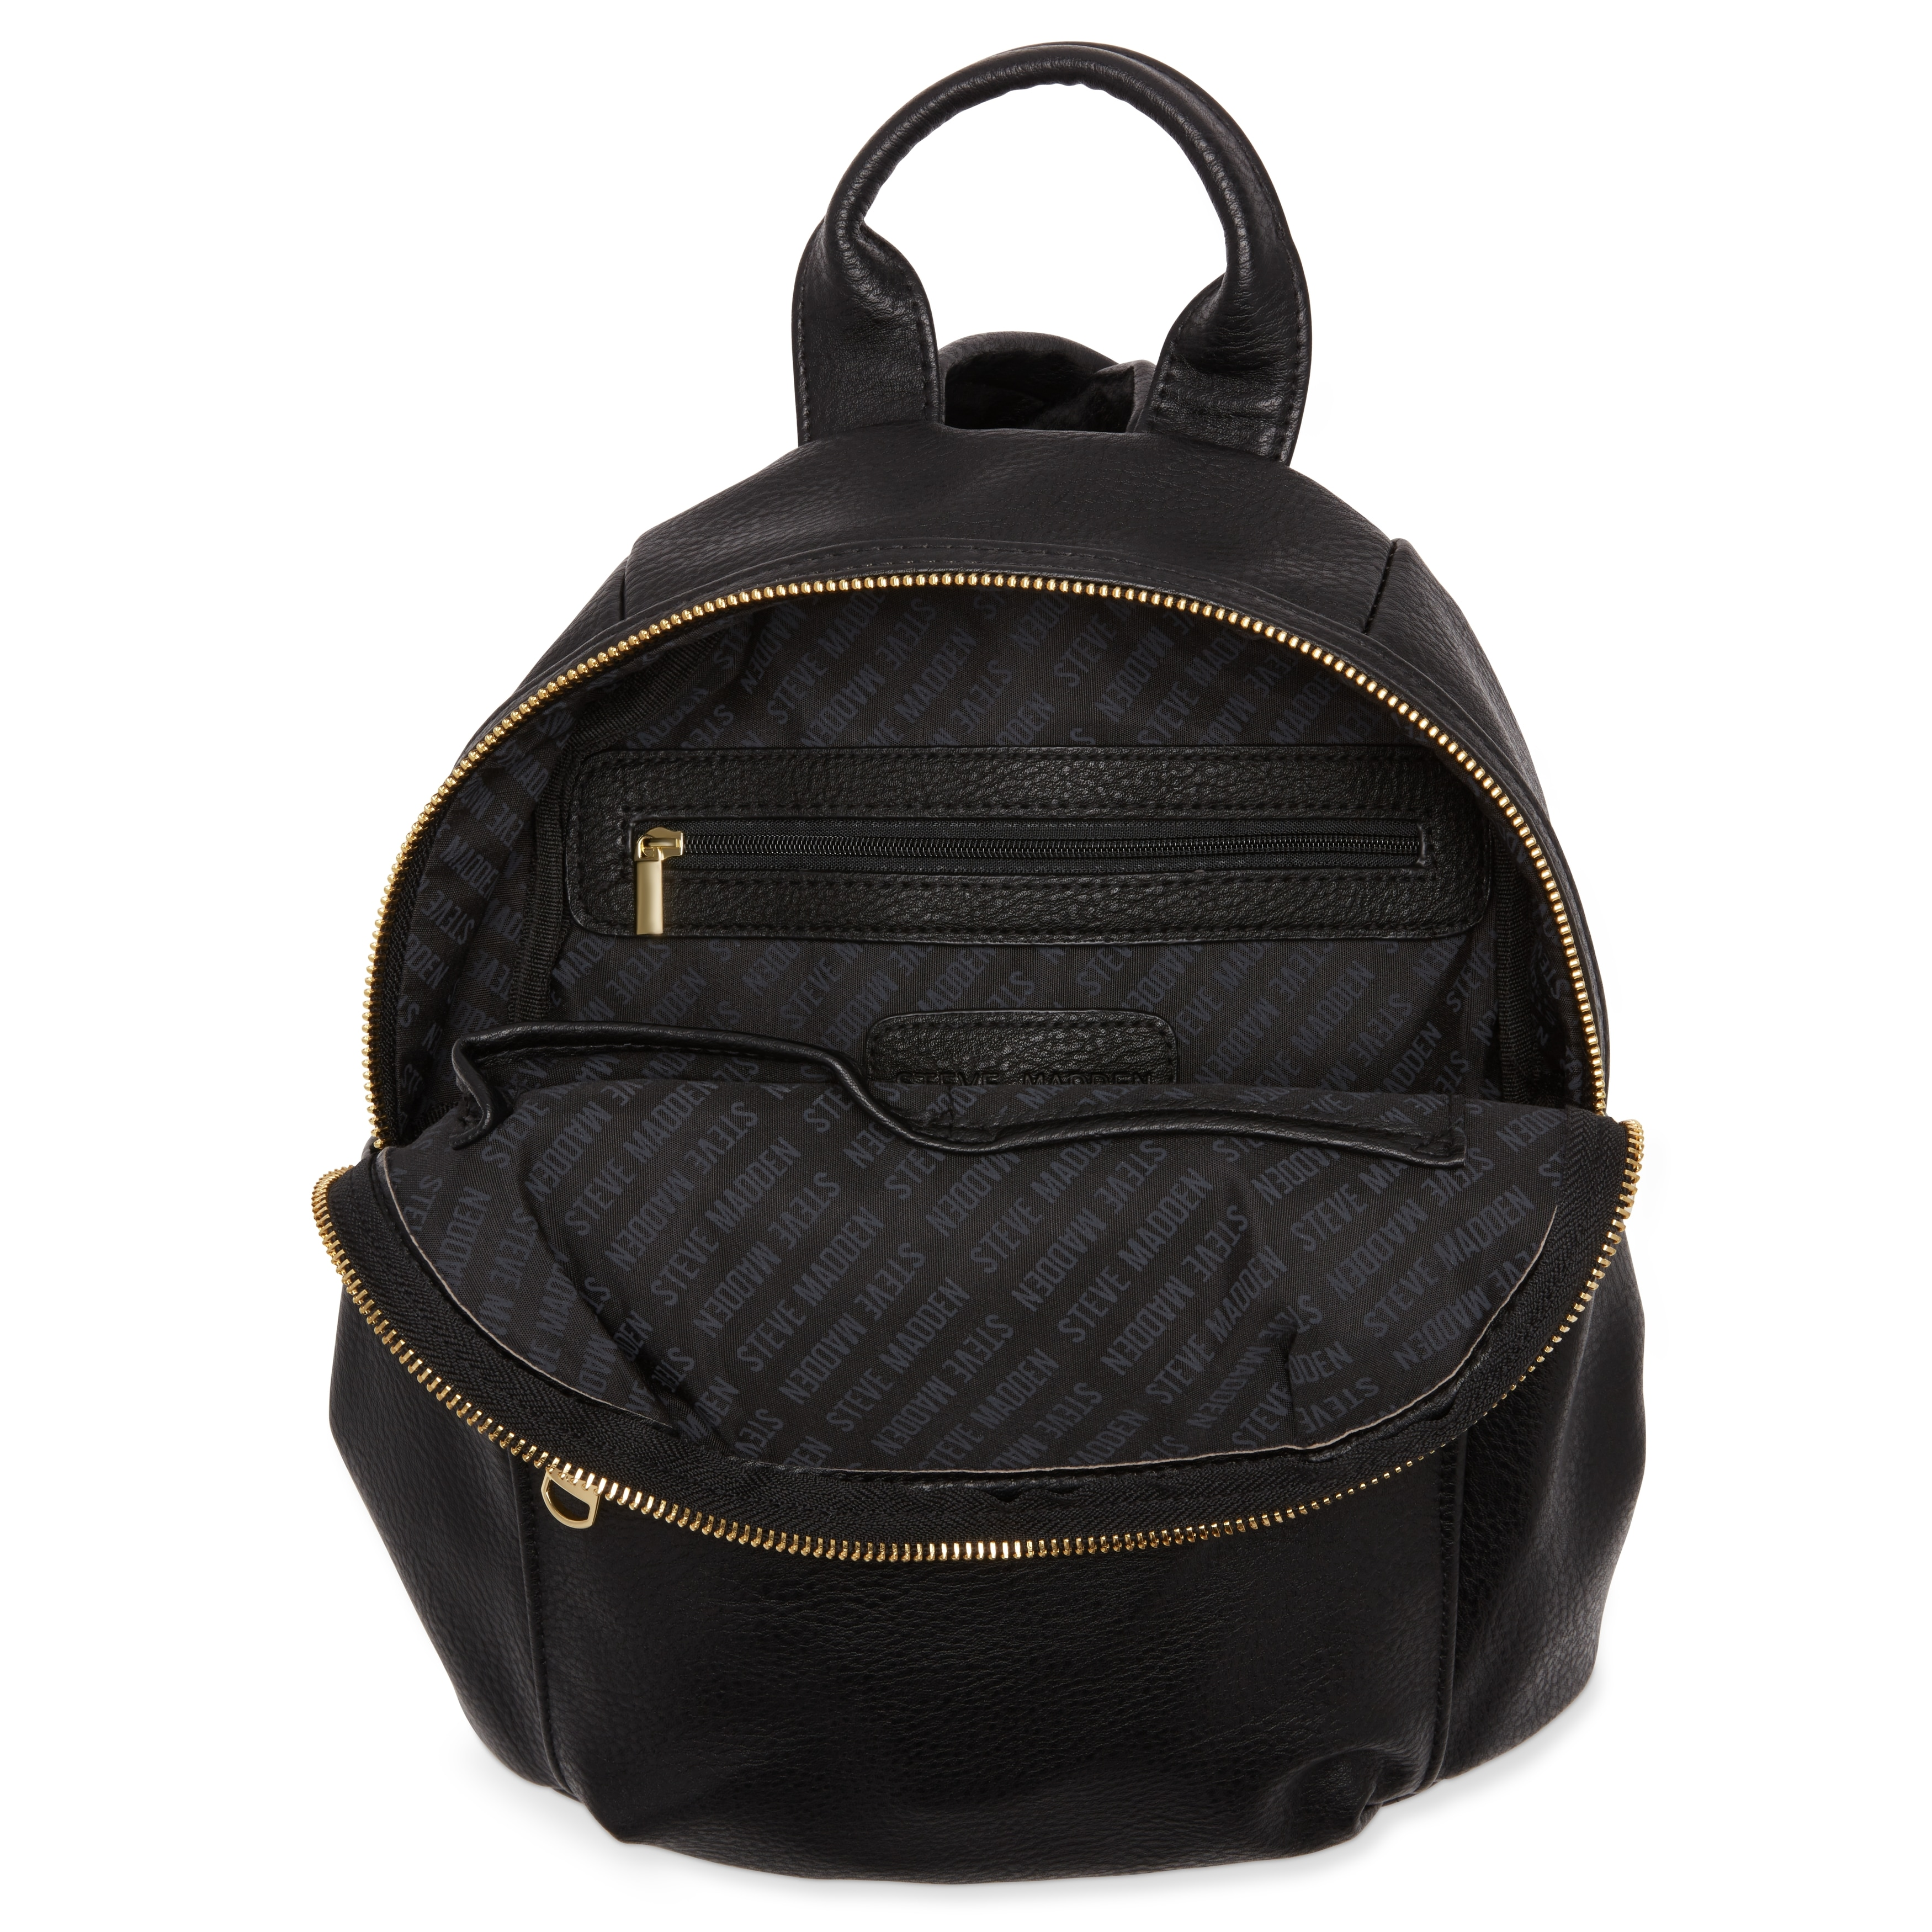 720da79361 Shop Steve Madden BKris Mini Fashion Backpack w Leopard Pouch - Free  Shipping On Orders Over  45 - Overstock - 18000689